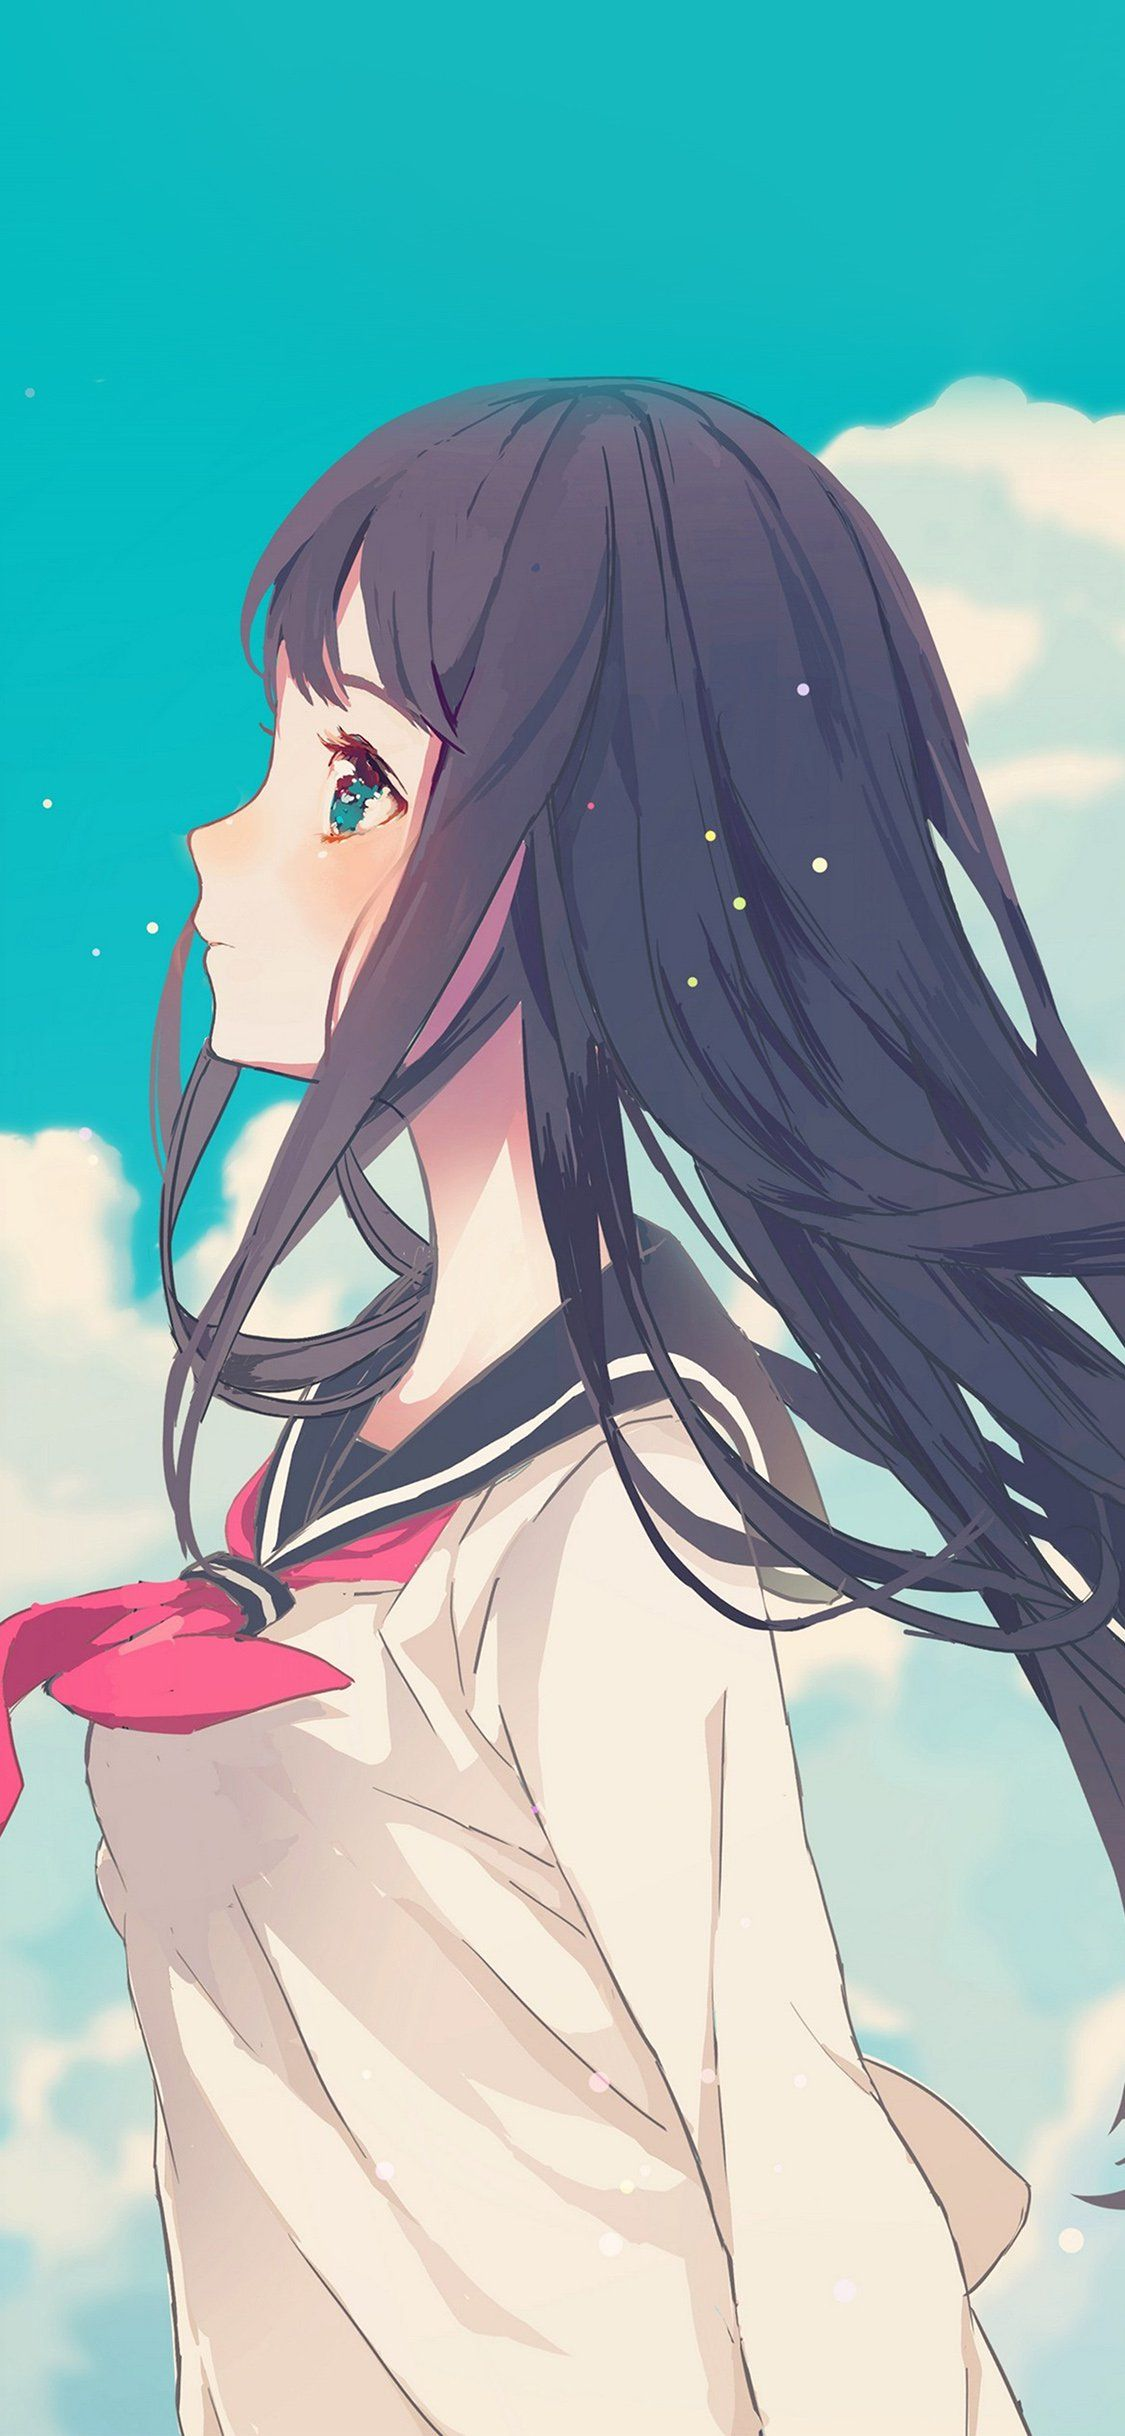 Beautiful Anime Girl Iphone Wallpapers Top Free Beautiful